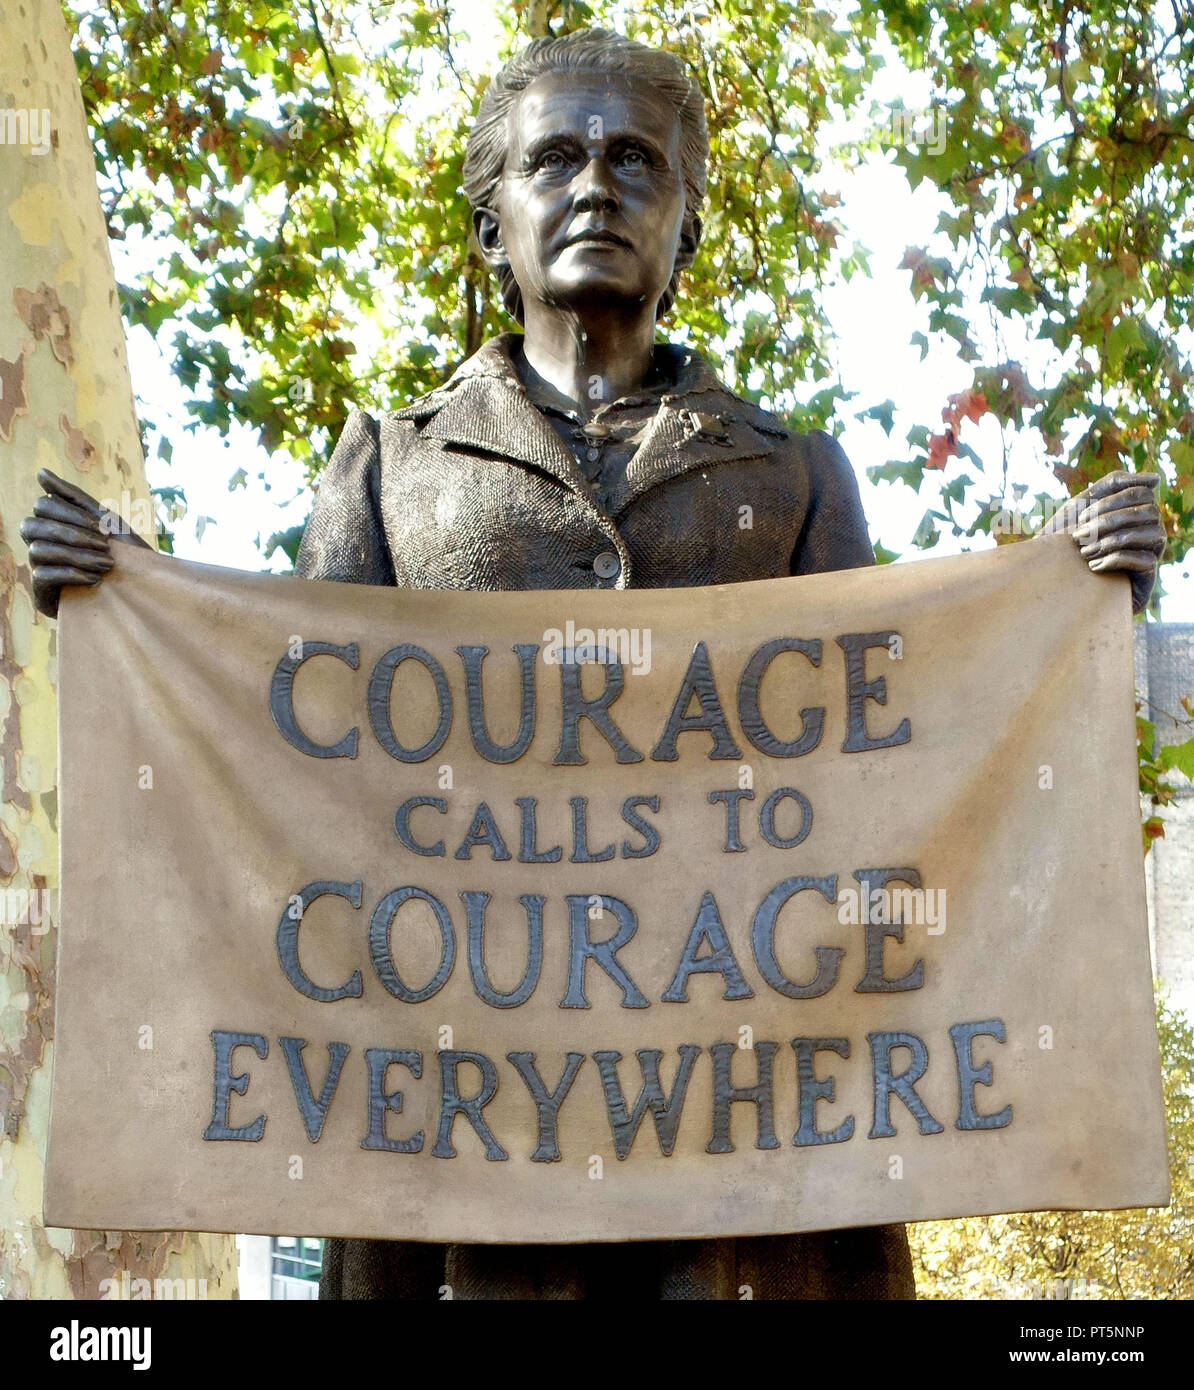 Statue of suffragist Millicent Fawcett by Gillian Wearing in Parliament Square, Westminster, London - Stock Image